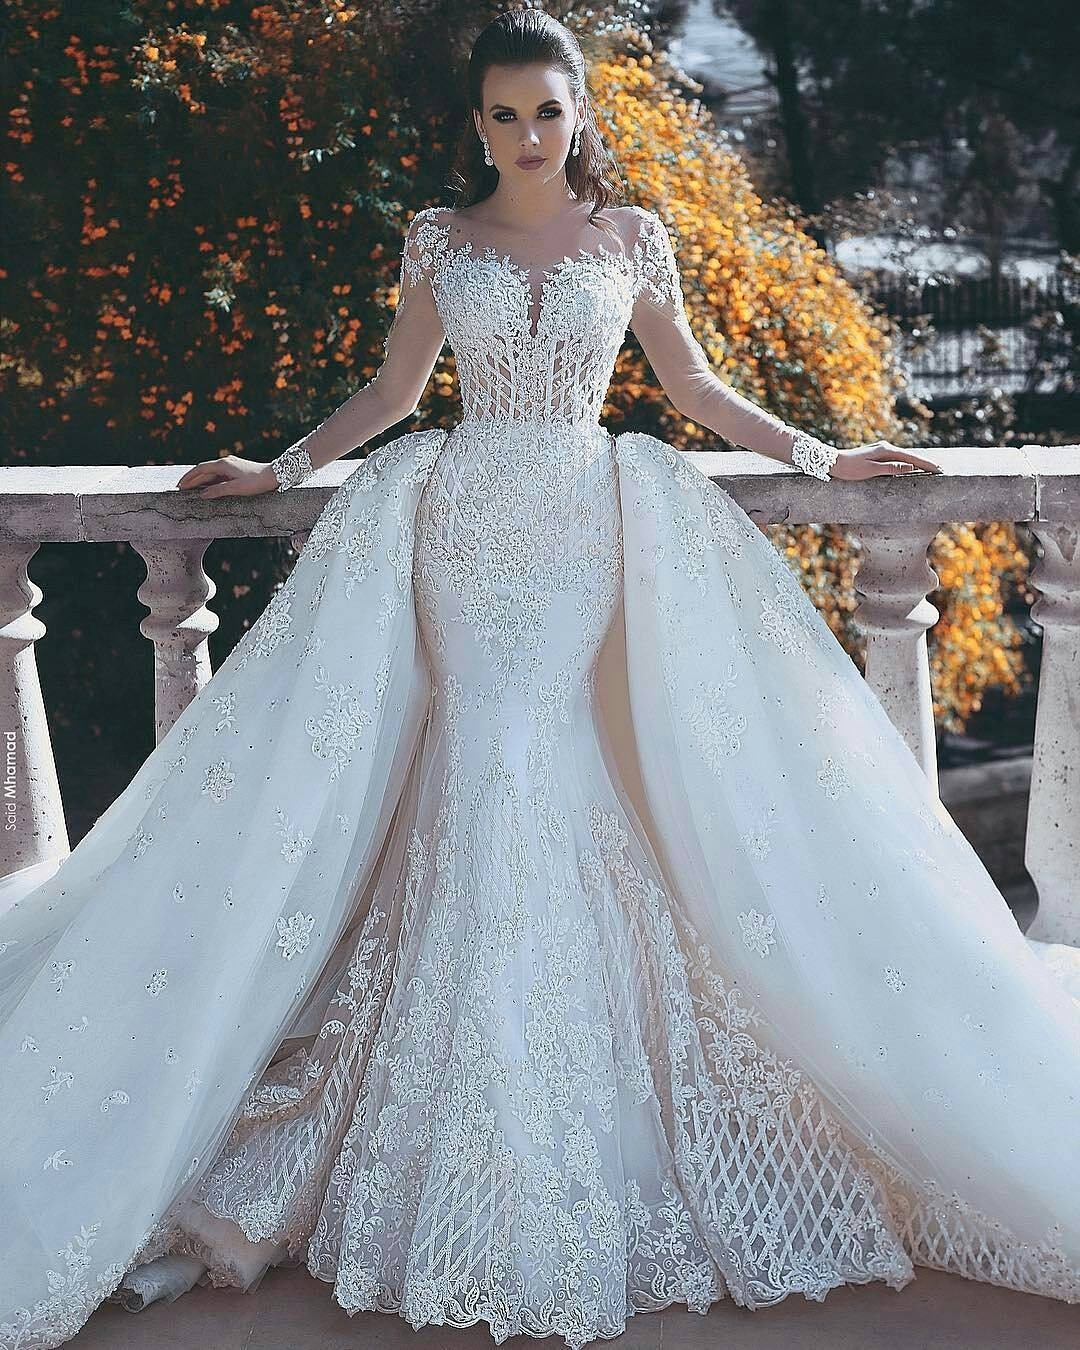 The Ball Gown Is Perfect For Brides Who Want To Feel Like Princesses ...